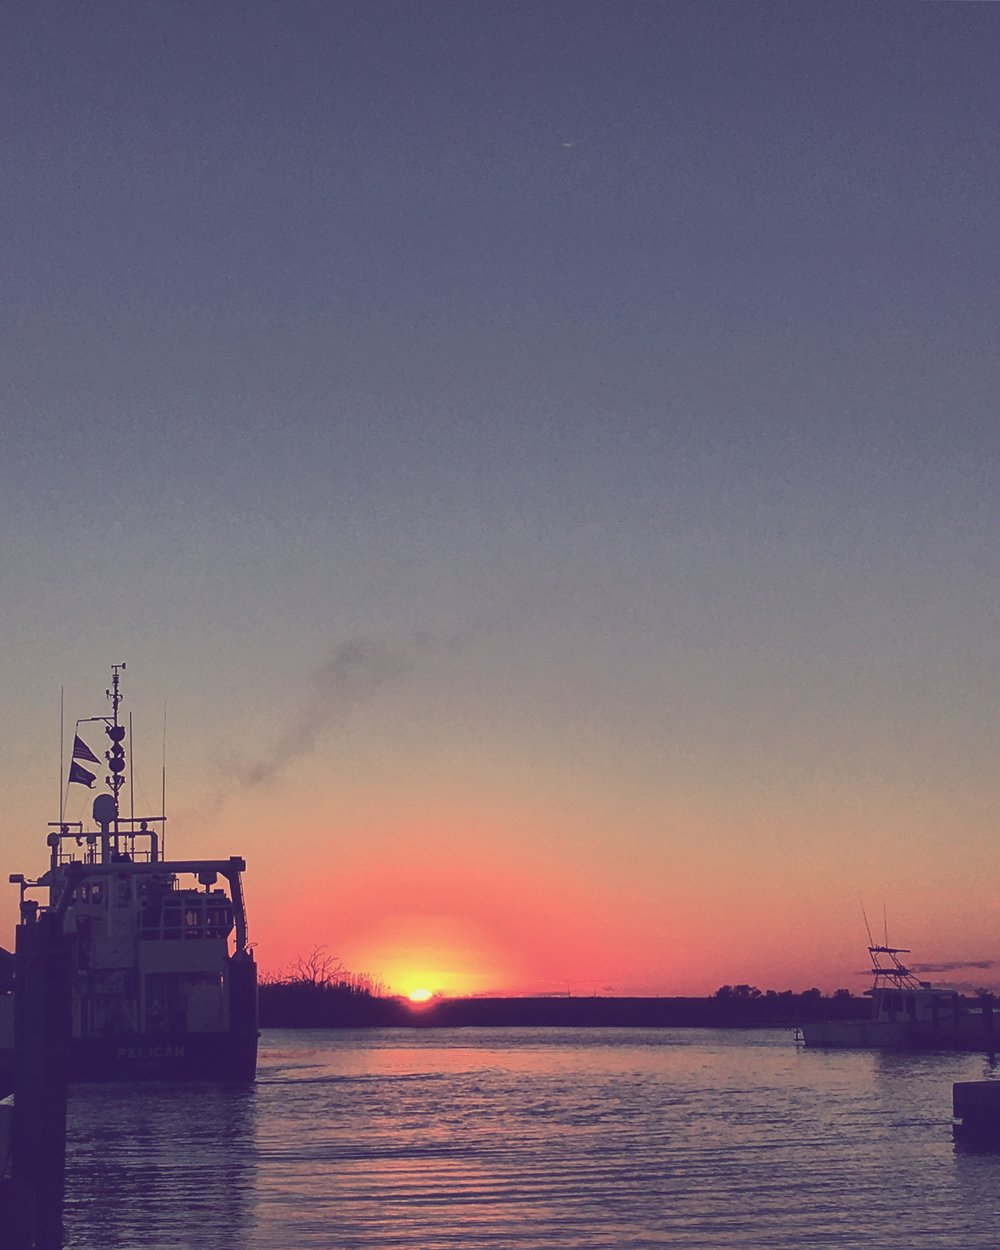 A very pretty Cocodrie sunset with the R/V Pelican.